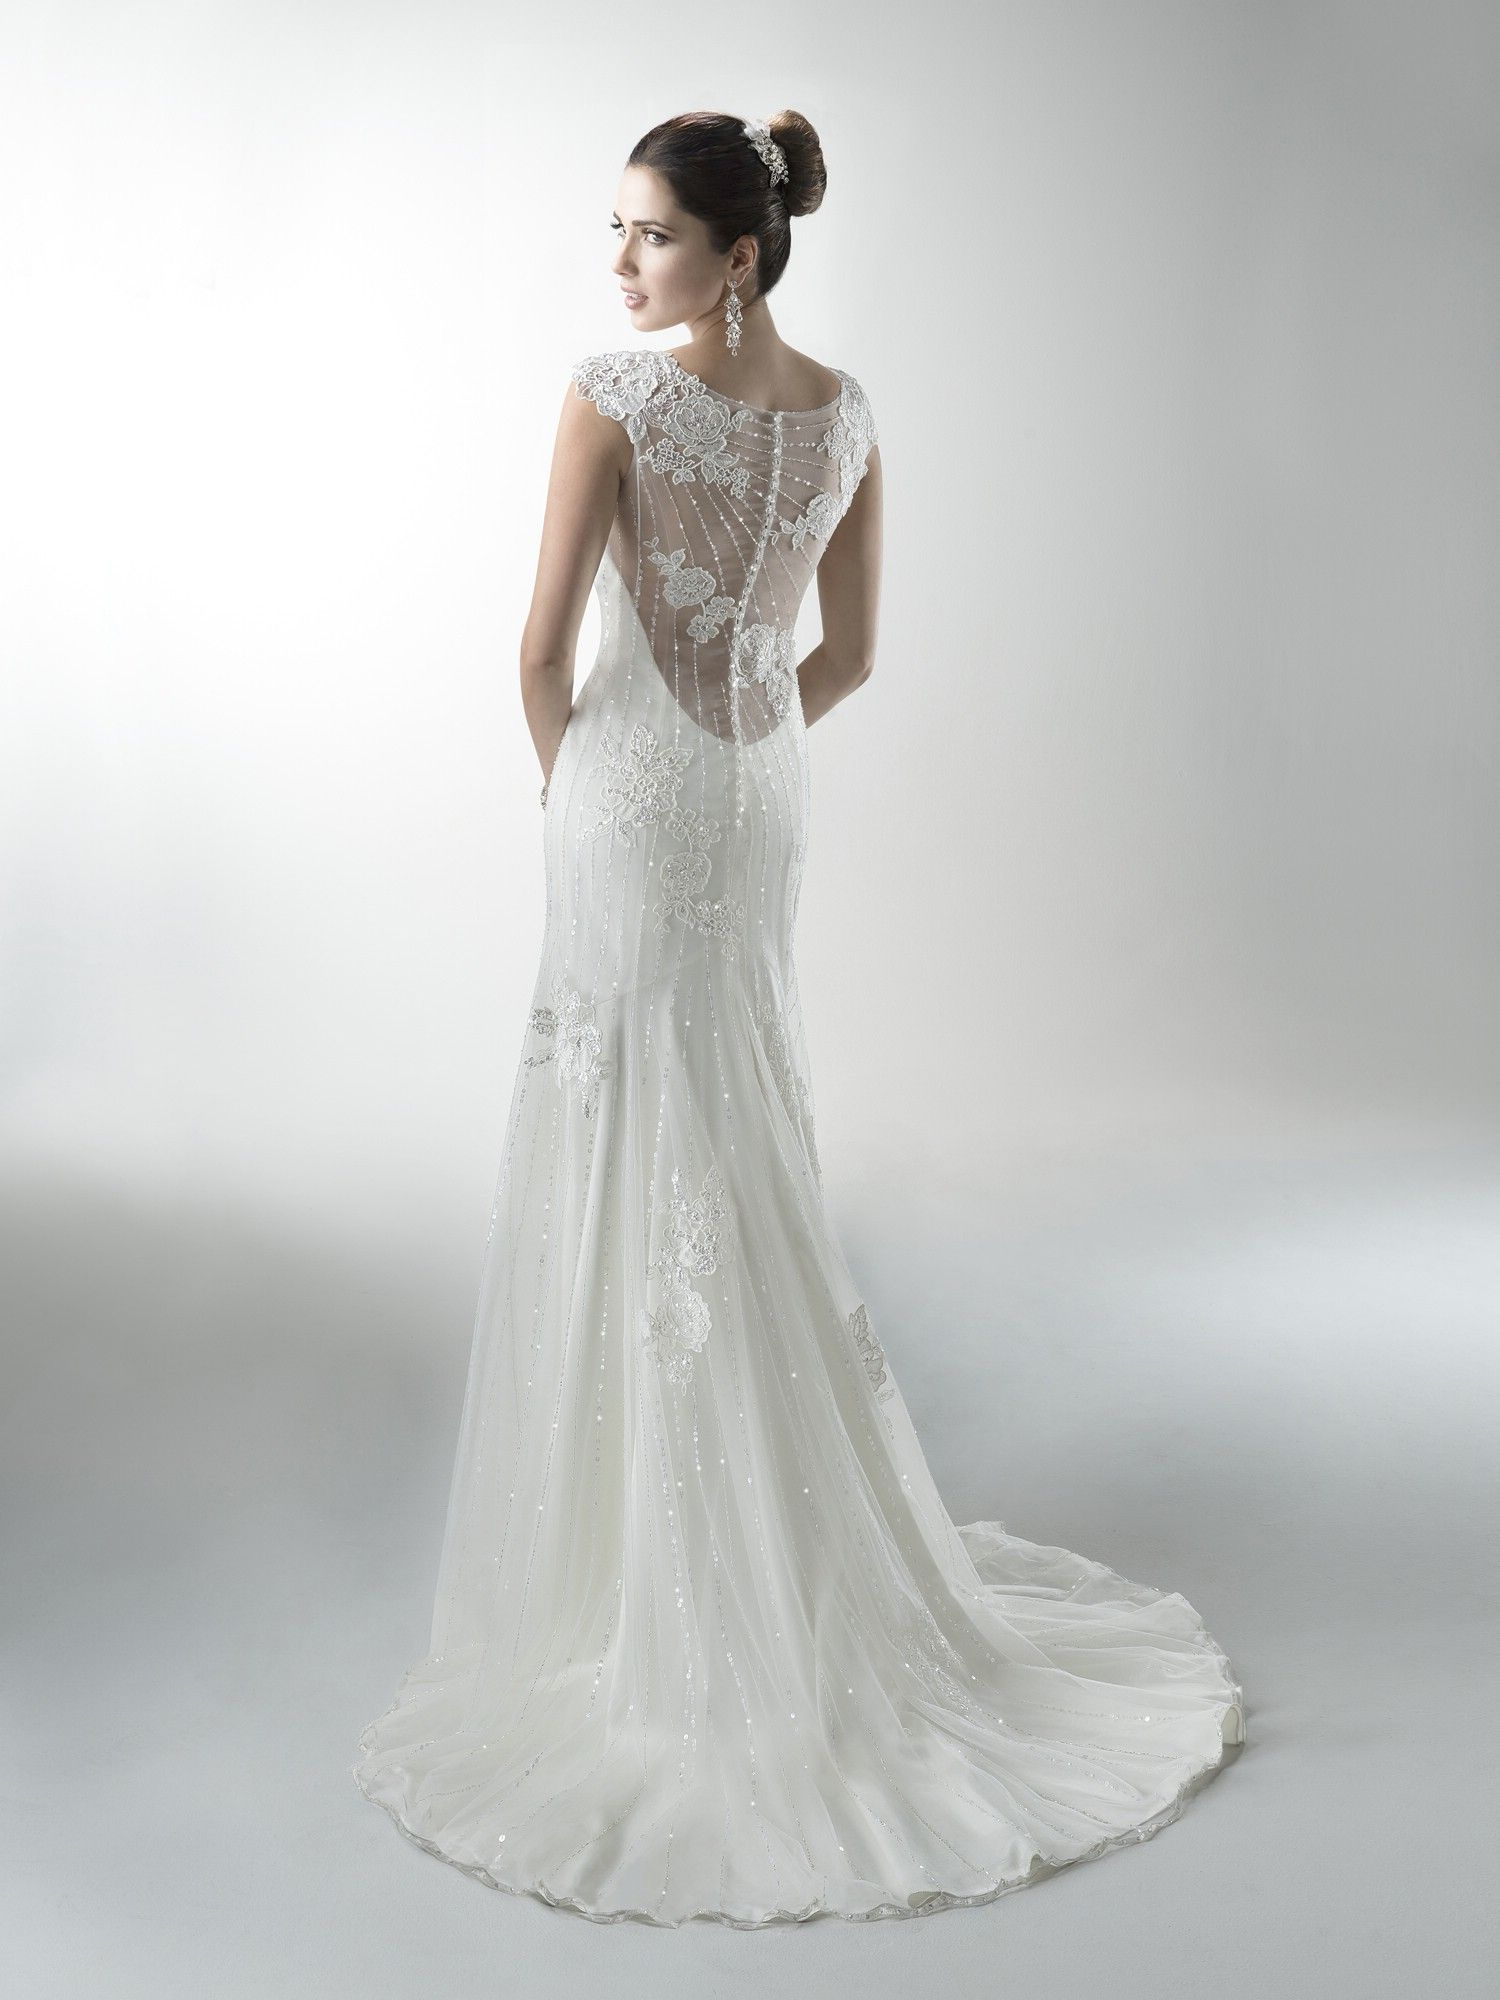 Maggie Sottero Wedding Dresses Savannah Marie At Bestbridalprices Com Maggie Sottero Wedding Dresses Wedding Dresses Sydney Maggie Sottero Bridal Gowns